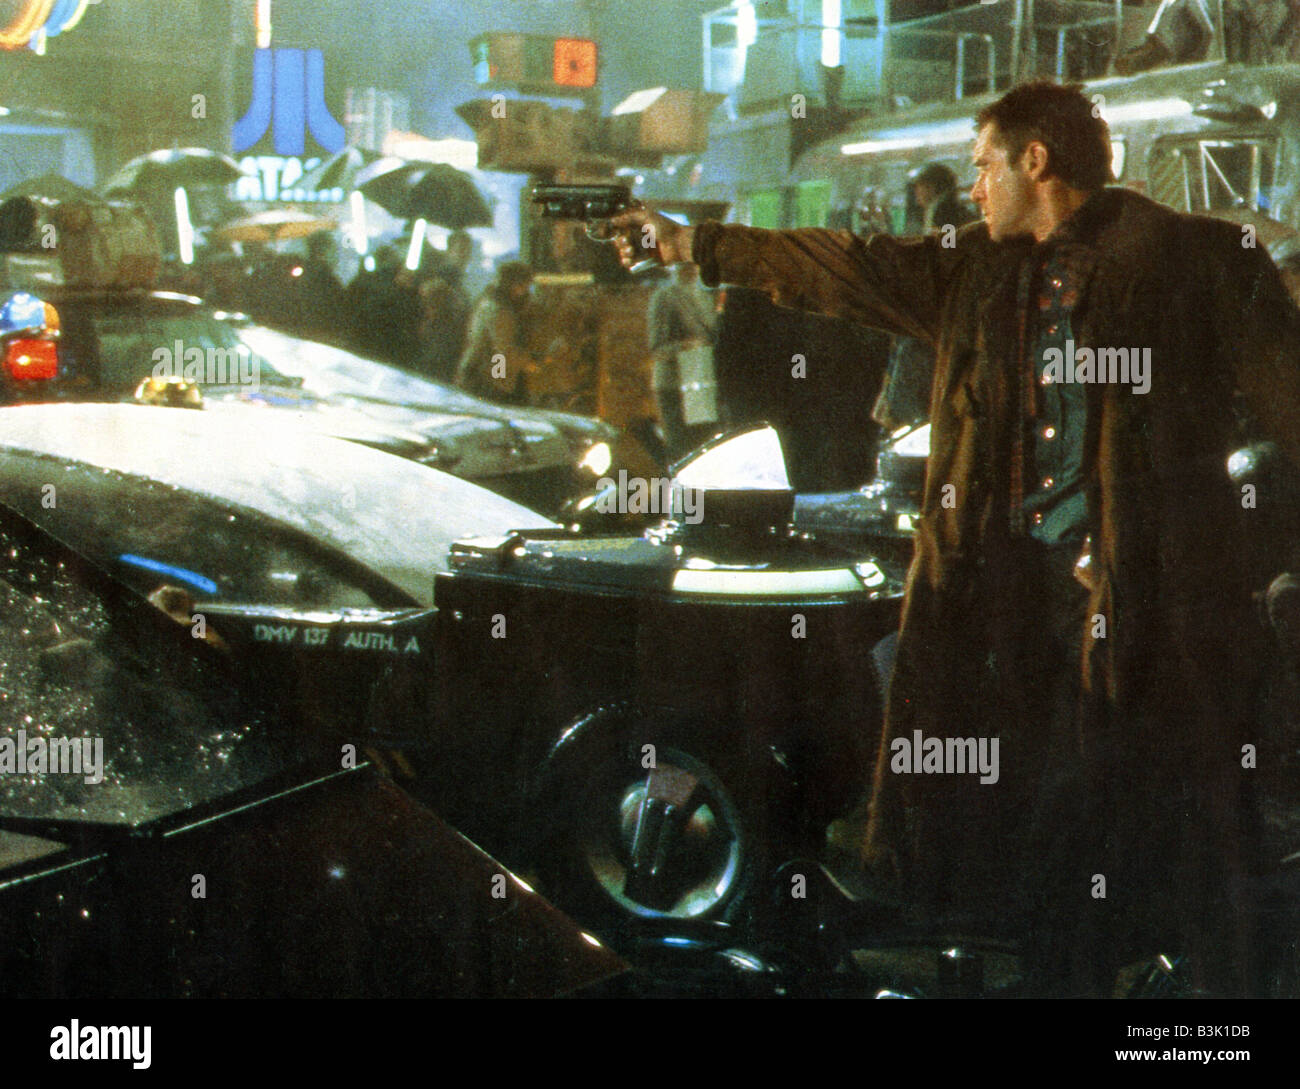 BLADE RUNNER 1982 Warner film with Harrison Ford and directed by Ridley Scott - Stock Image